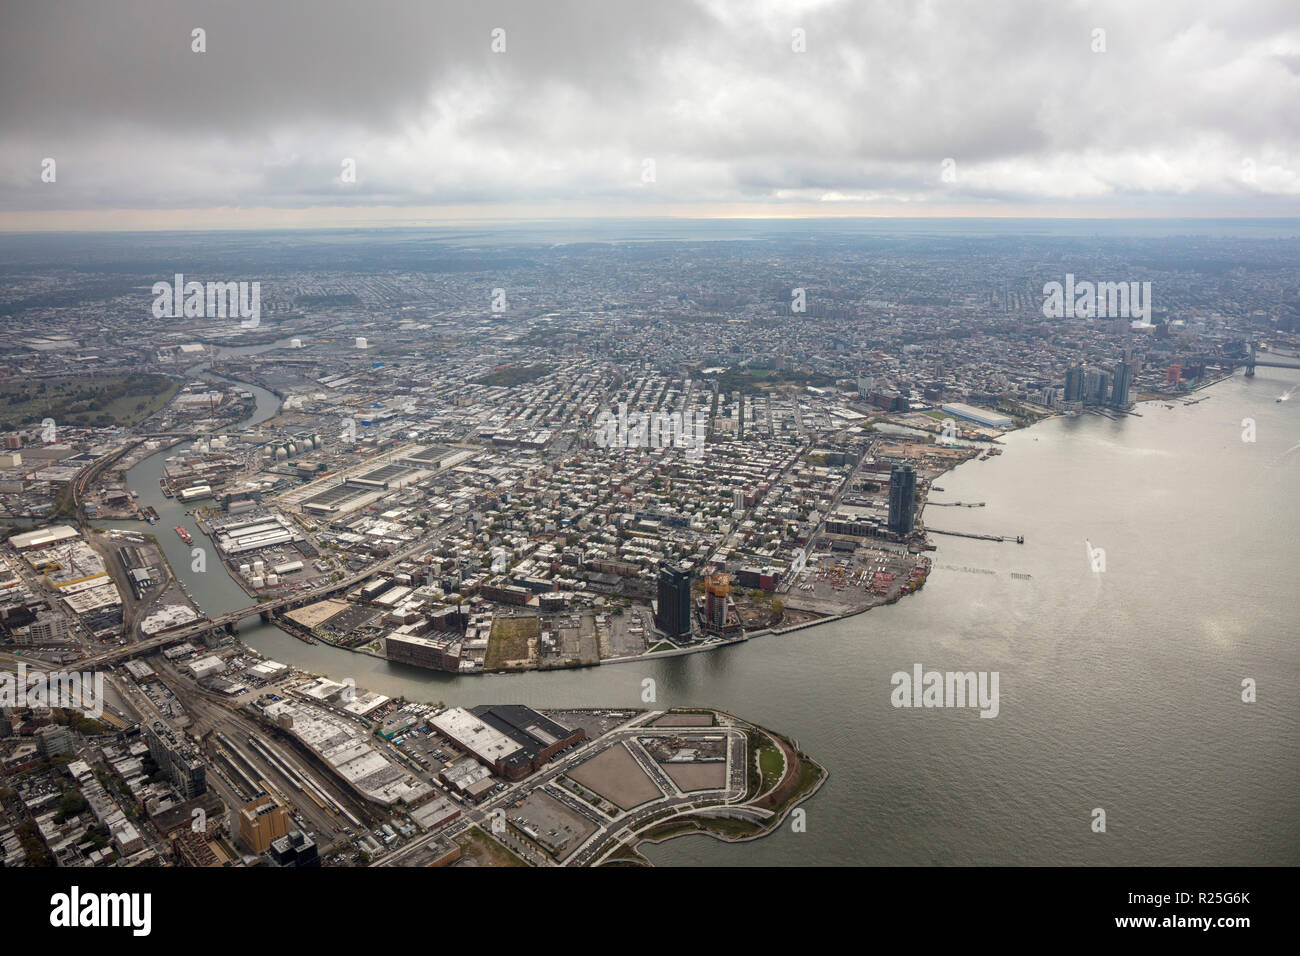 helicopter aerial view of Greenpoint, Brooklyn, New York, USA - Stock Image